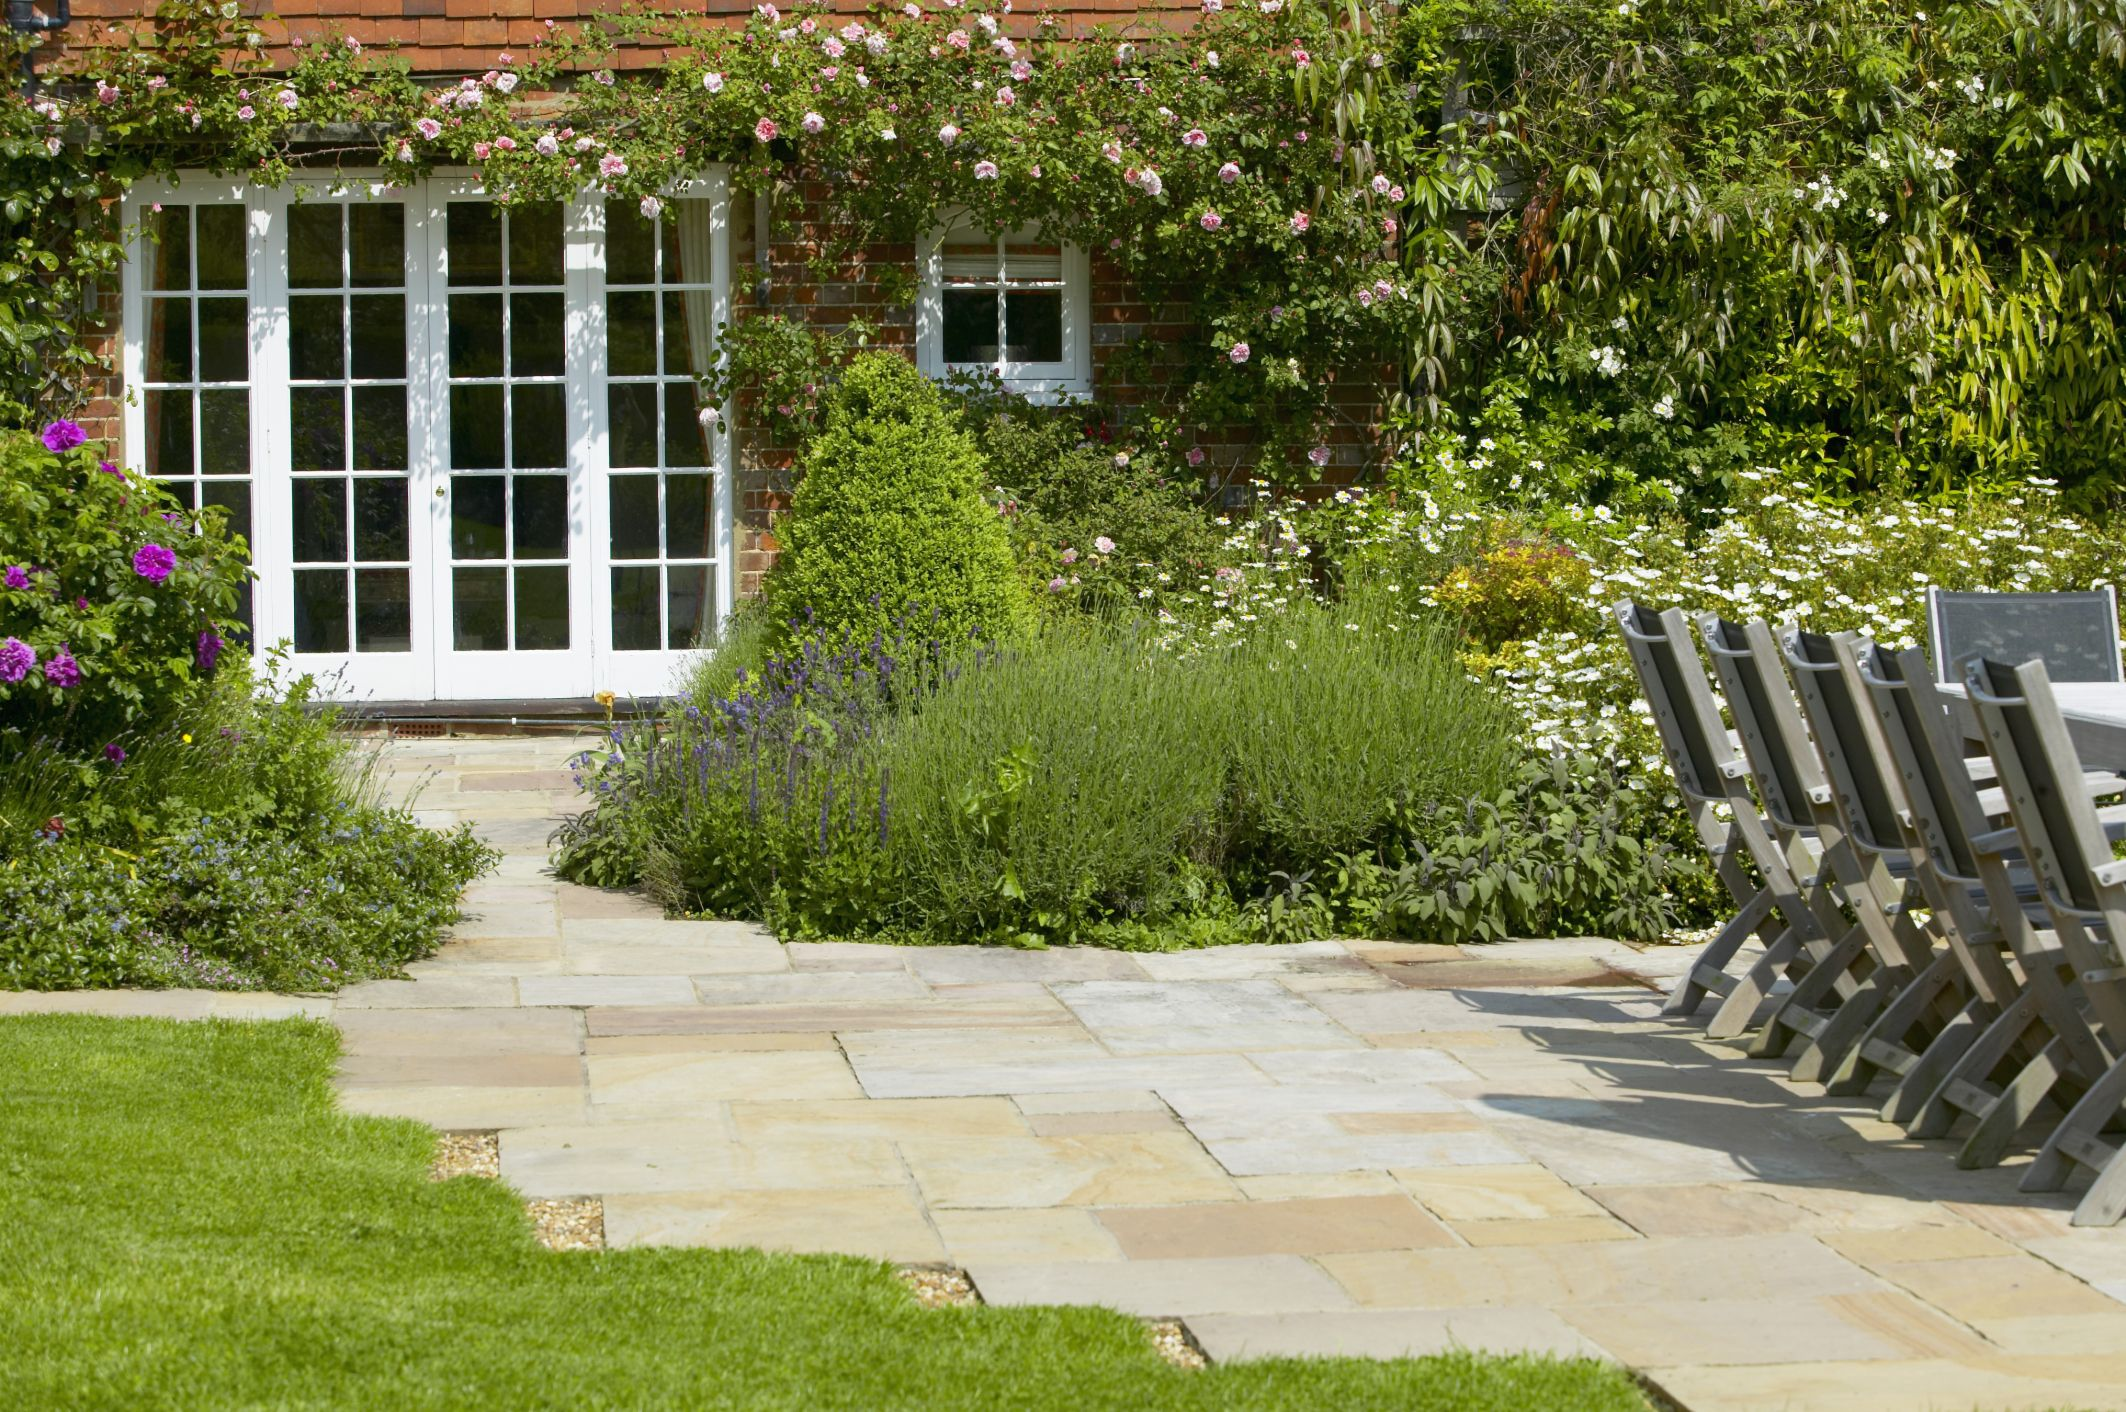 21 Landscaping Ideas For A Low-Maintenance Yard